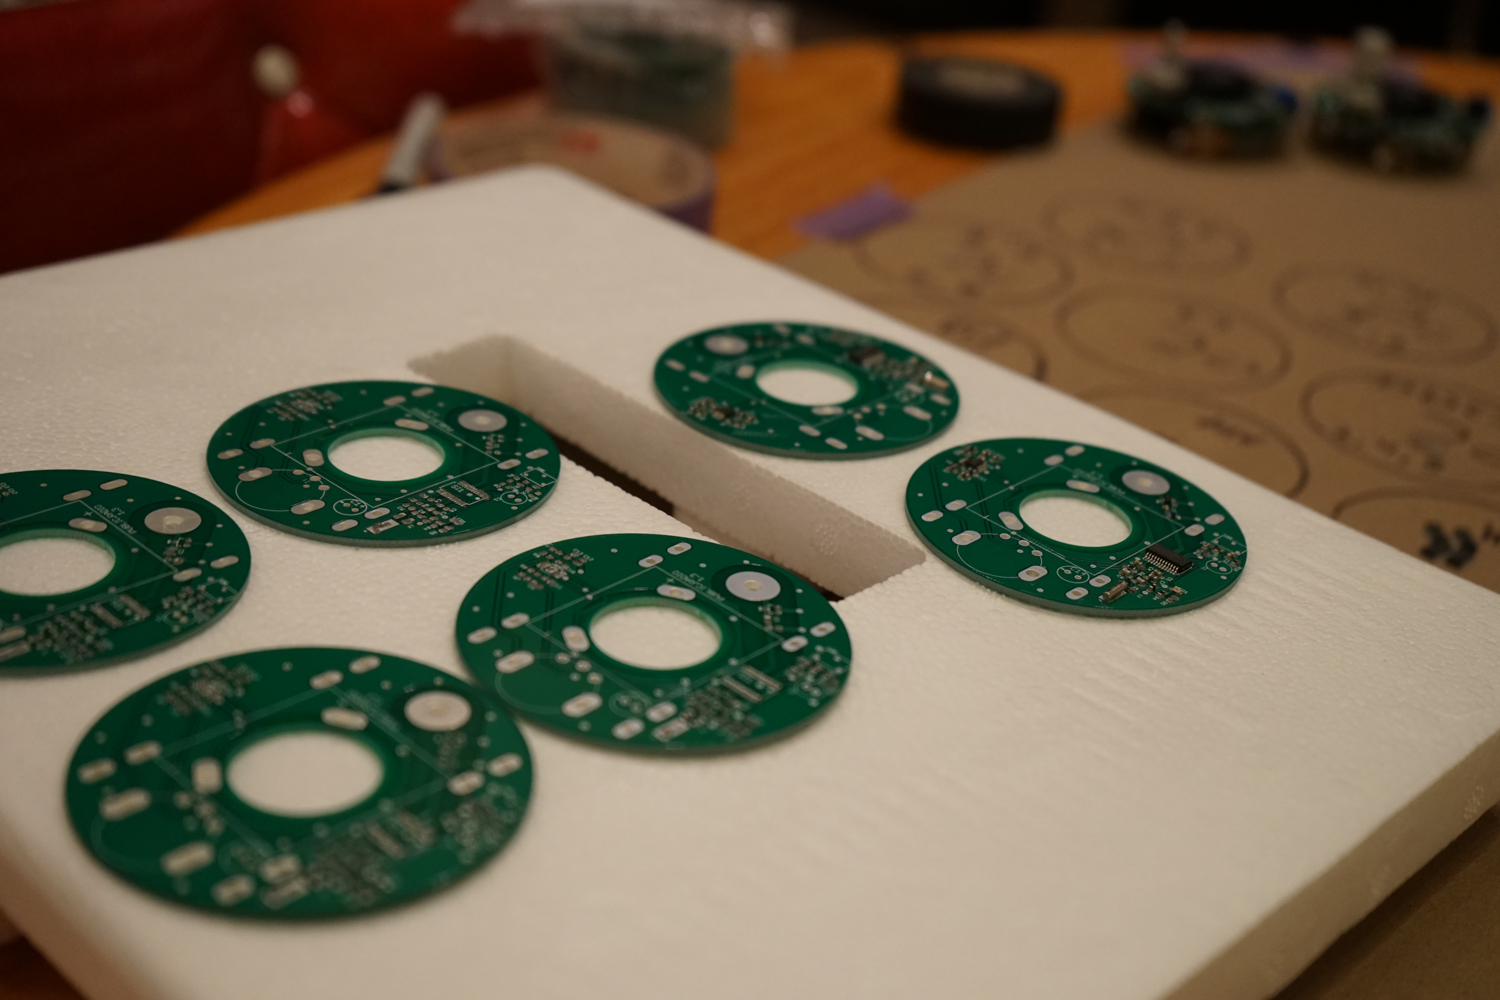 Soldered & partially assembled (but not reflowed) PCBs.